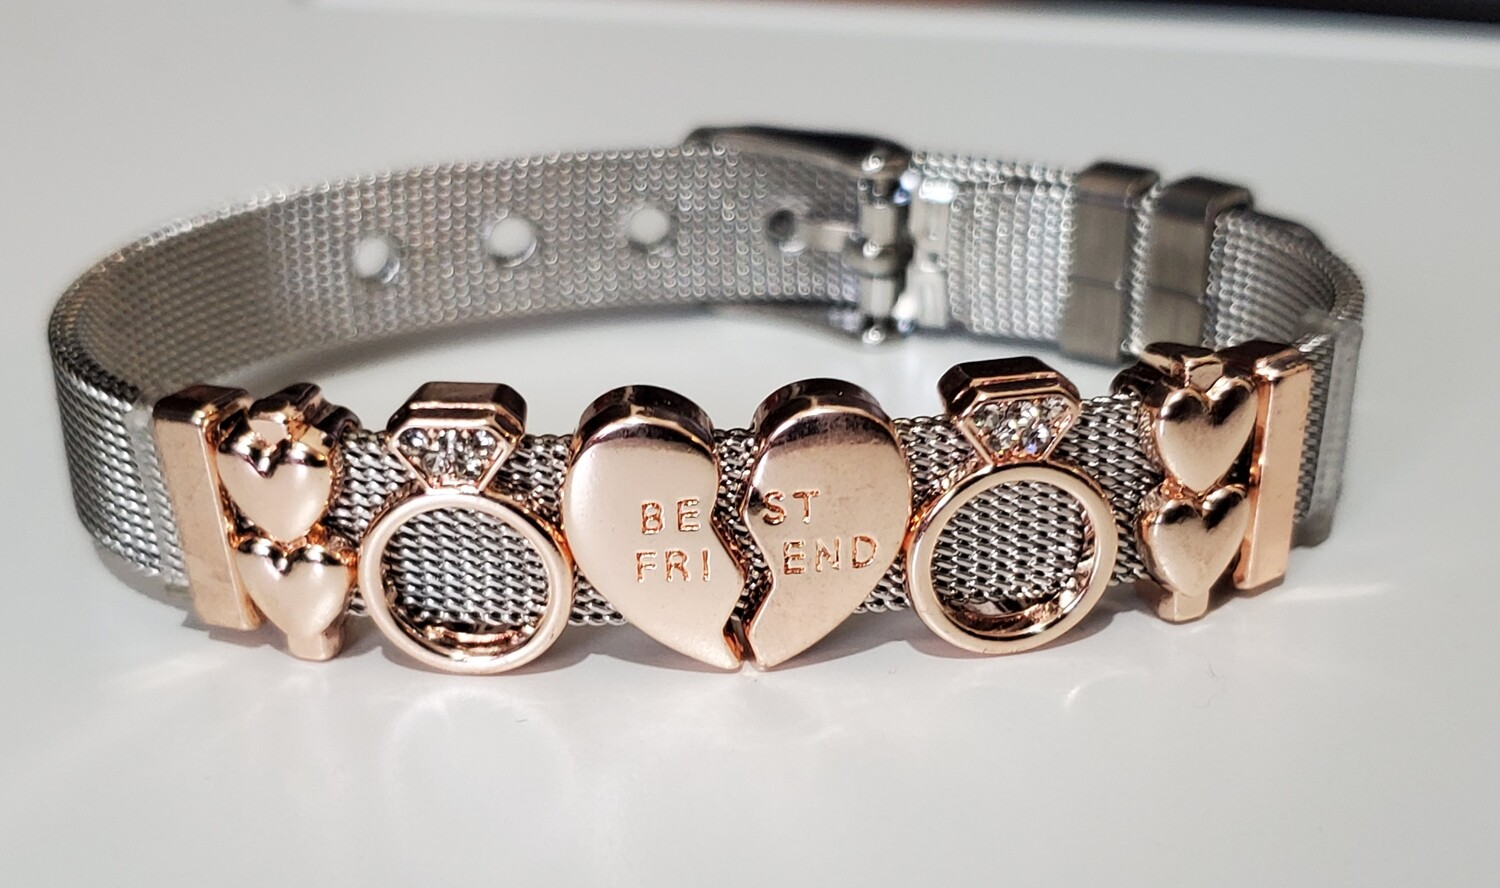 Best Friend Mesh Bracelet